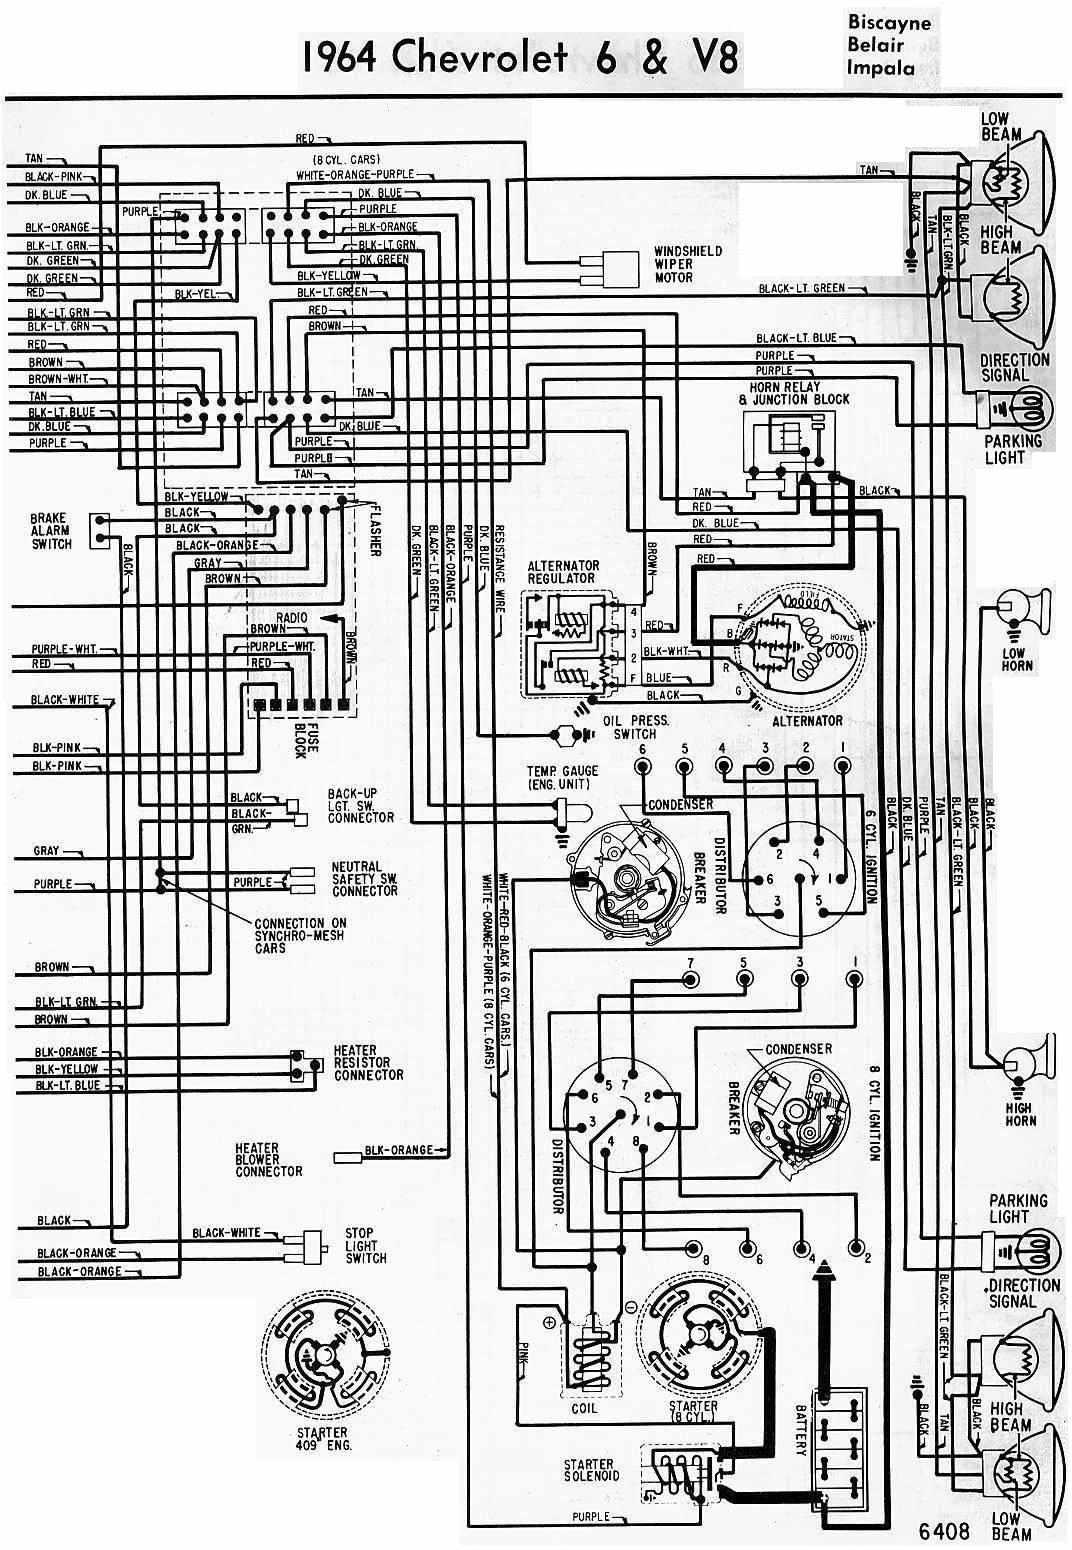 Electrical+Wiring+Diagram+Of+1964+Chevrolet+6+And+V8 1964 bel air wire diagram colors incorrect chevytalk free 1964 ford galaxie wiring harness at soozxer.org